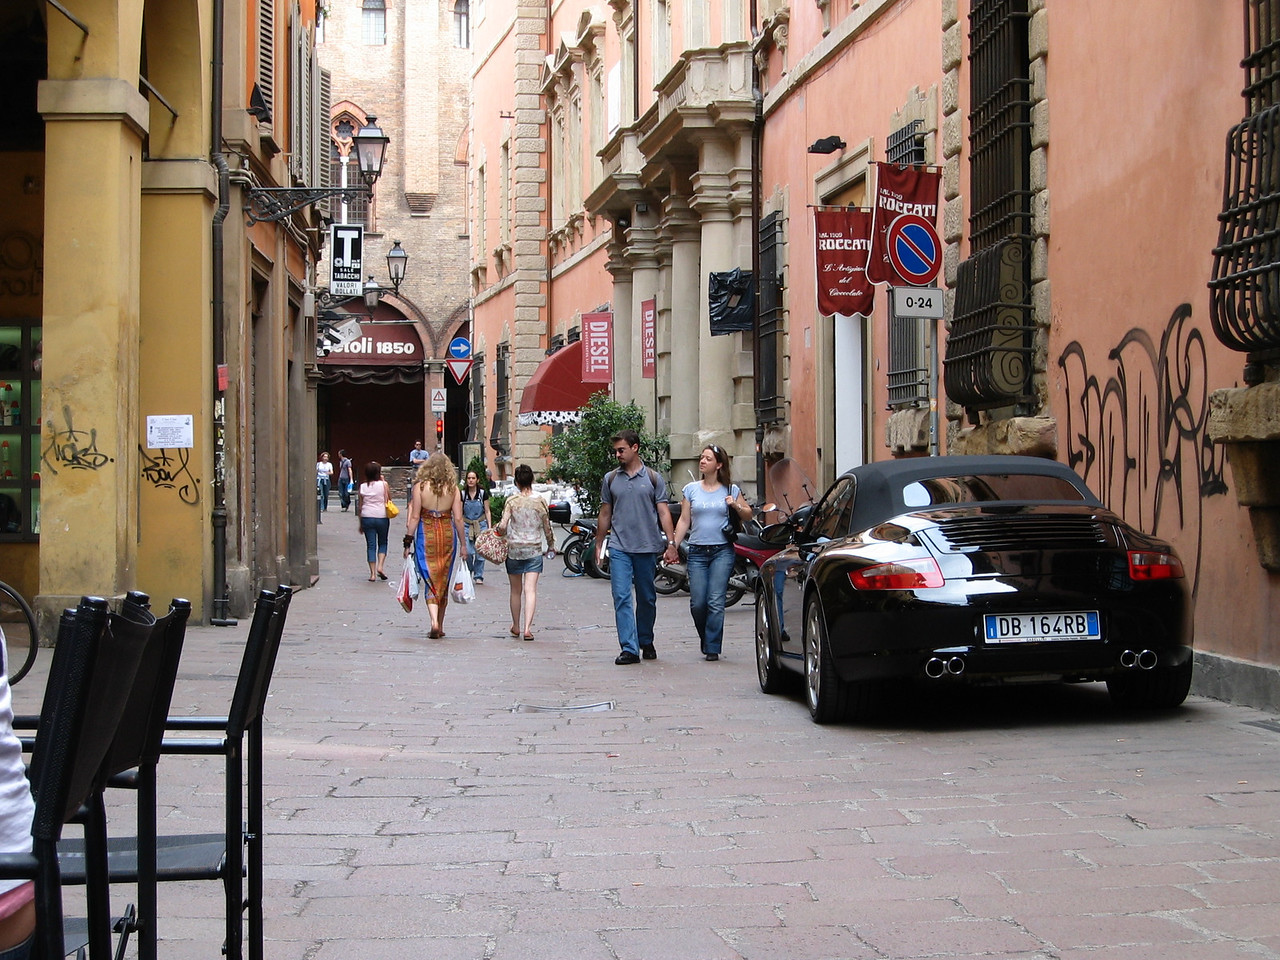 Bologna, worth a visit any time.